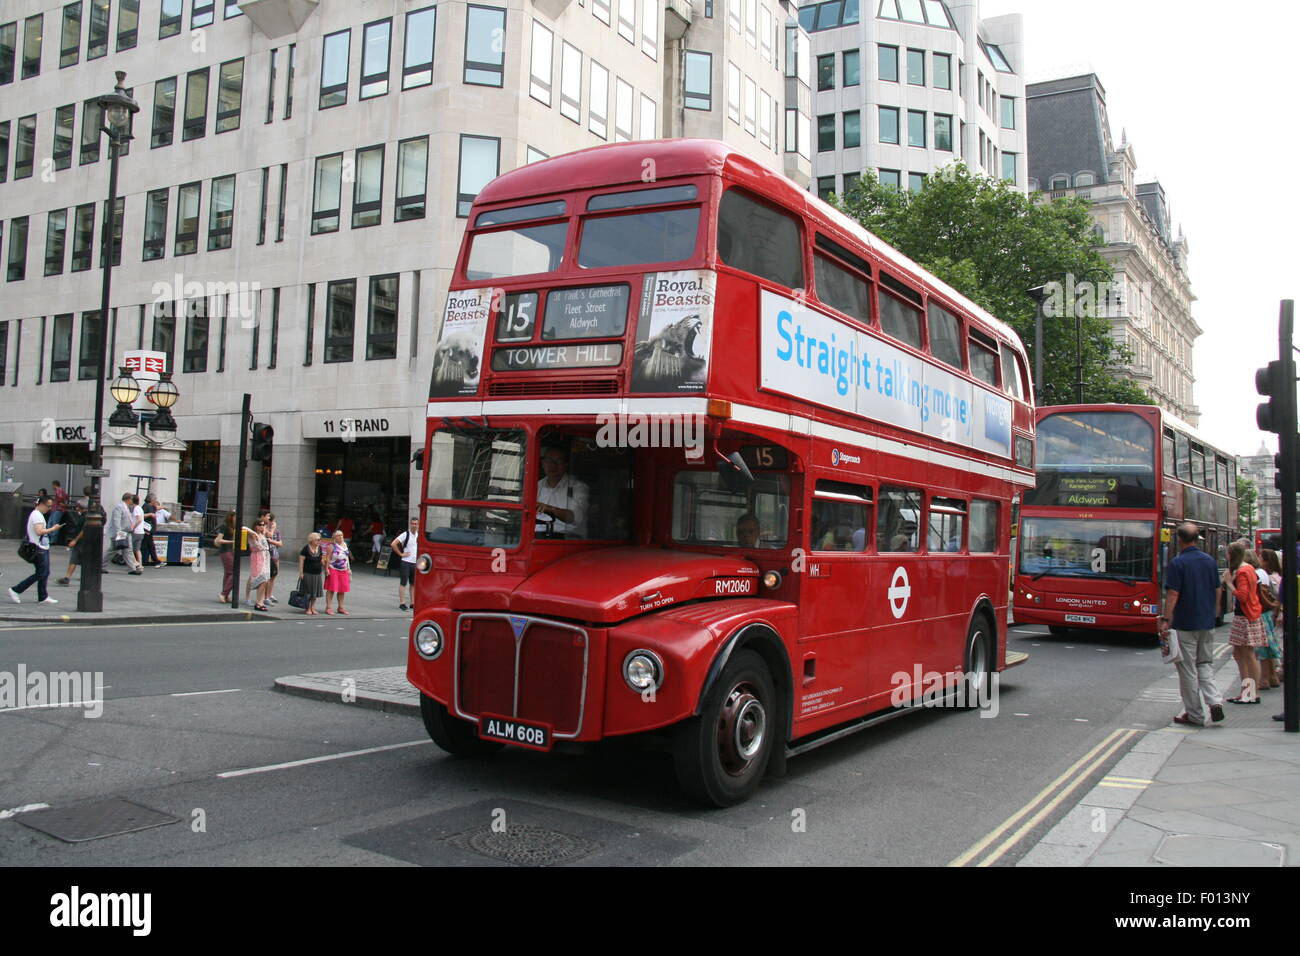 stagecoach bus london photos stagecoach bus london images alamy. Black Bedroom Furniture Sets. Home Design Ideas